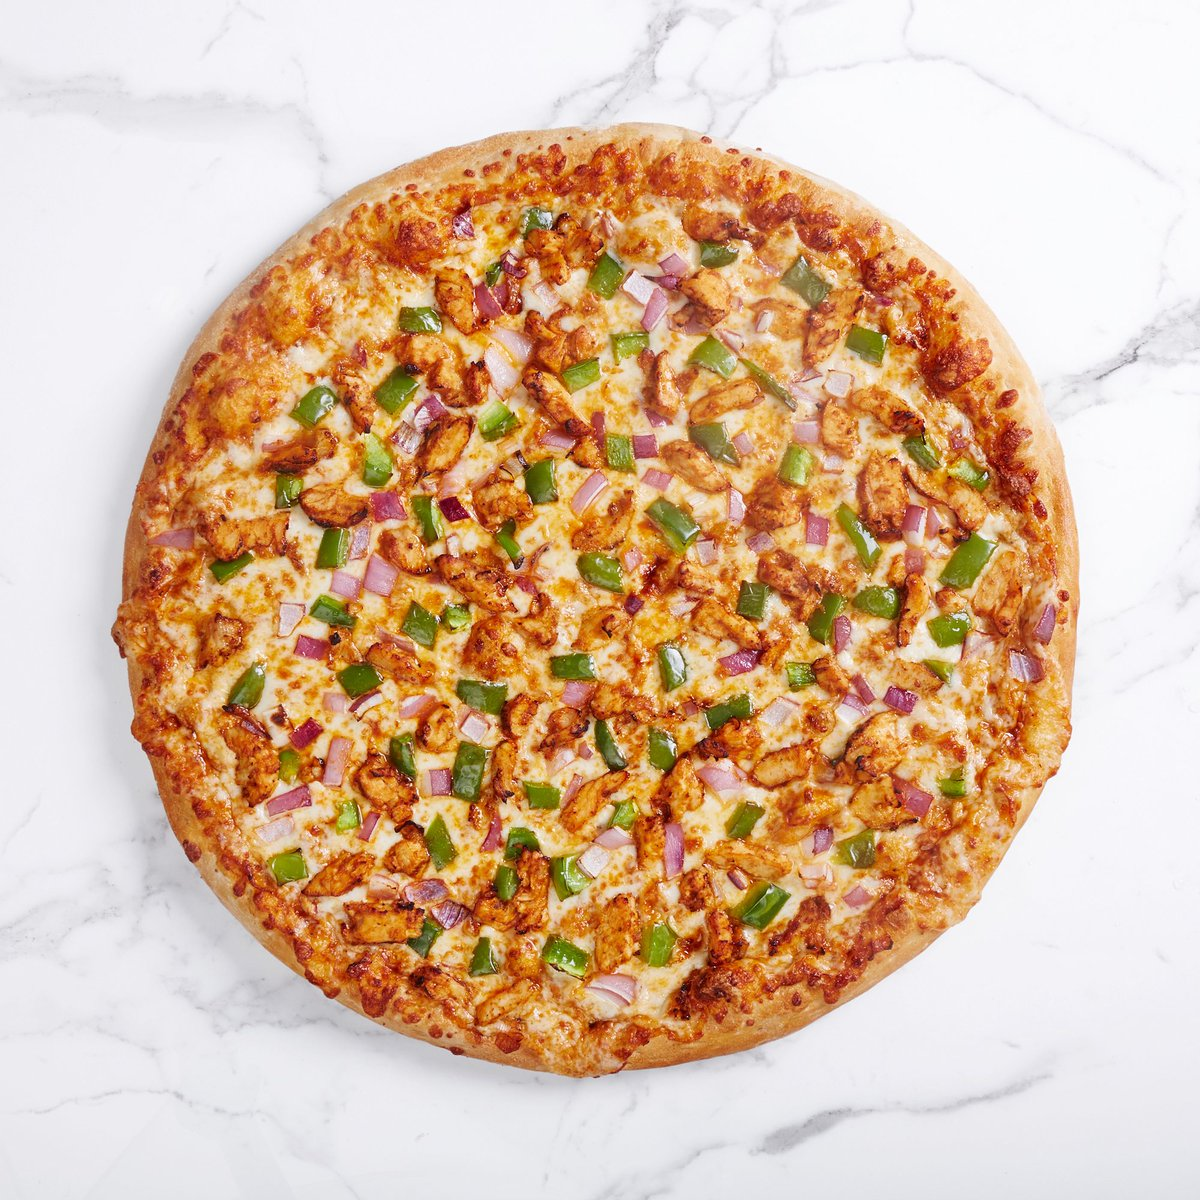 Ginos Pizza On Twitter The Butter Chicken Just Wait Until You